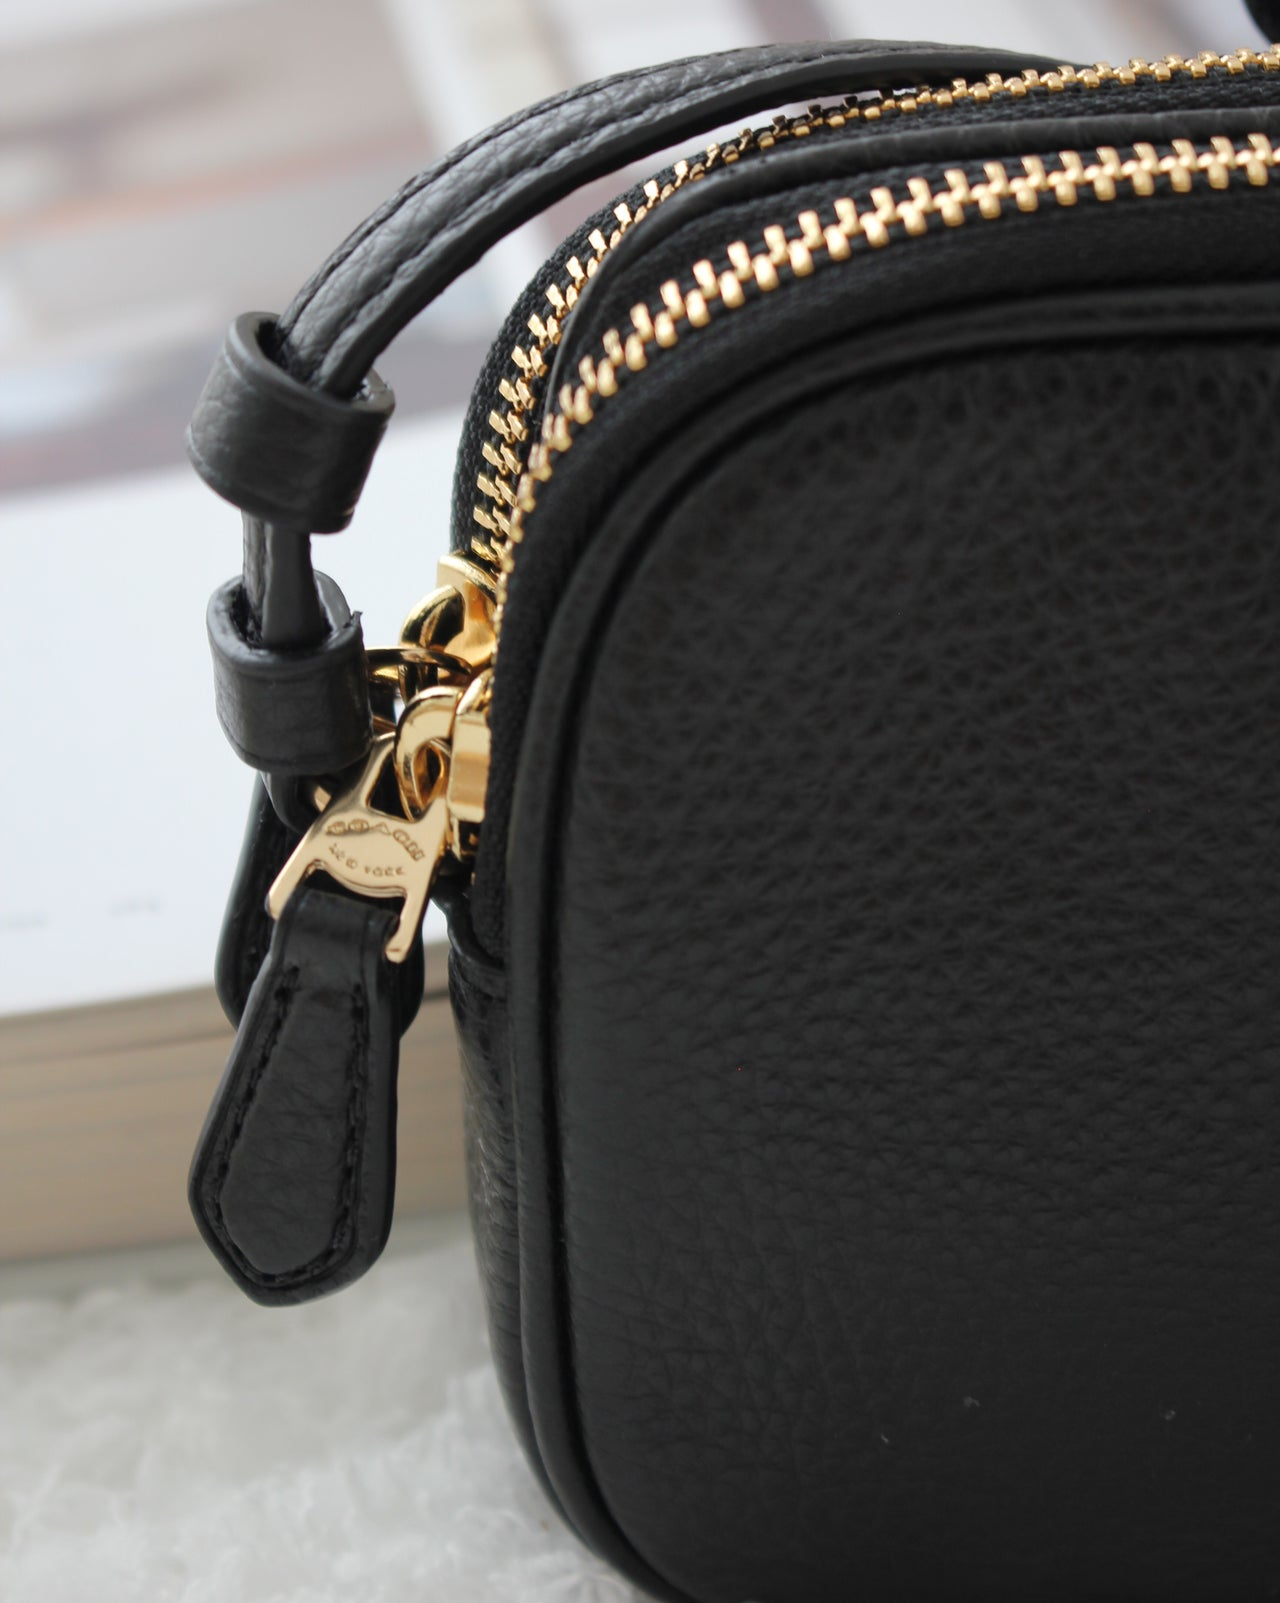 COACH CROSSBODY POUCH - LovelyMadness Clothing Online Fashion Malaysia